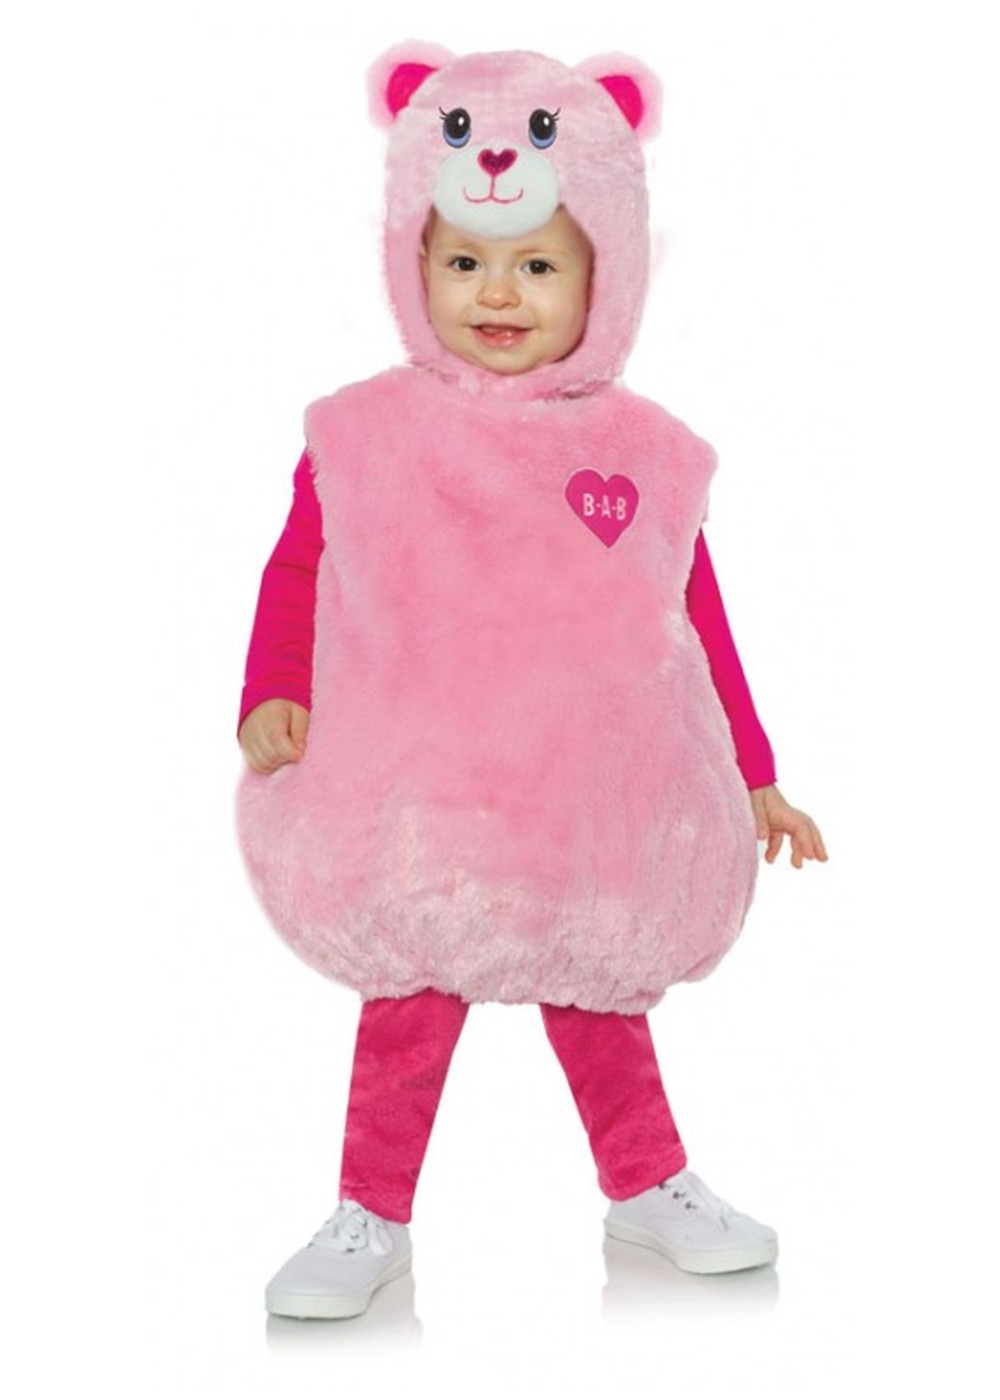 Kids Toddlers Build A Bear Pink Teddy Costume